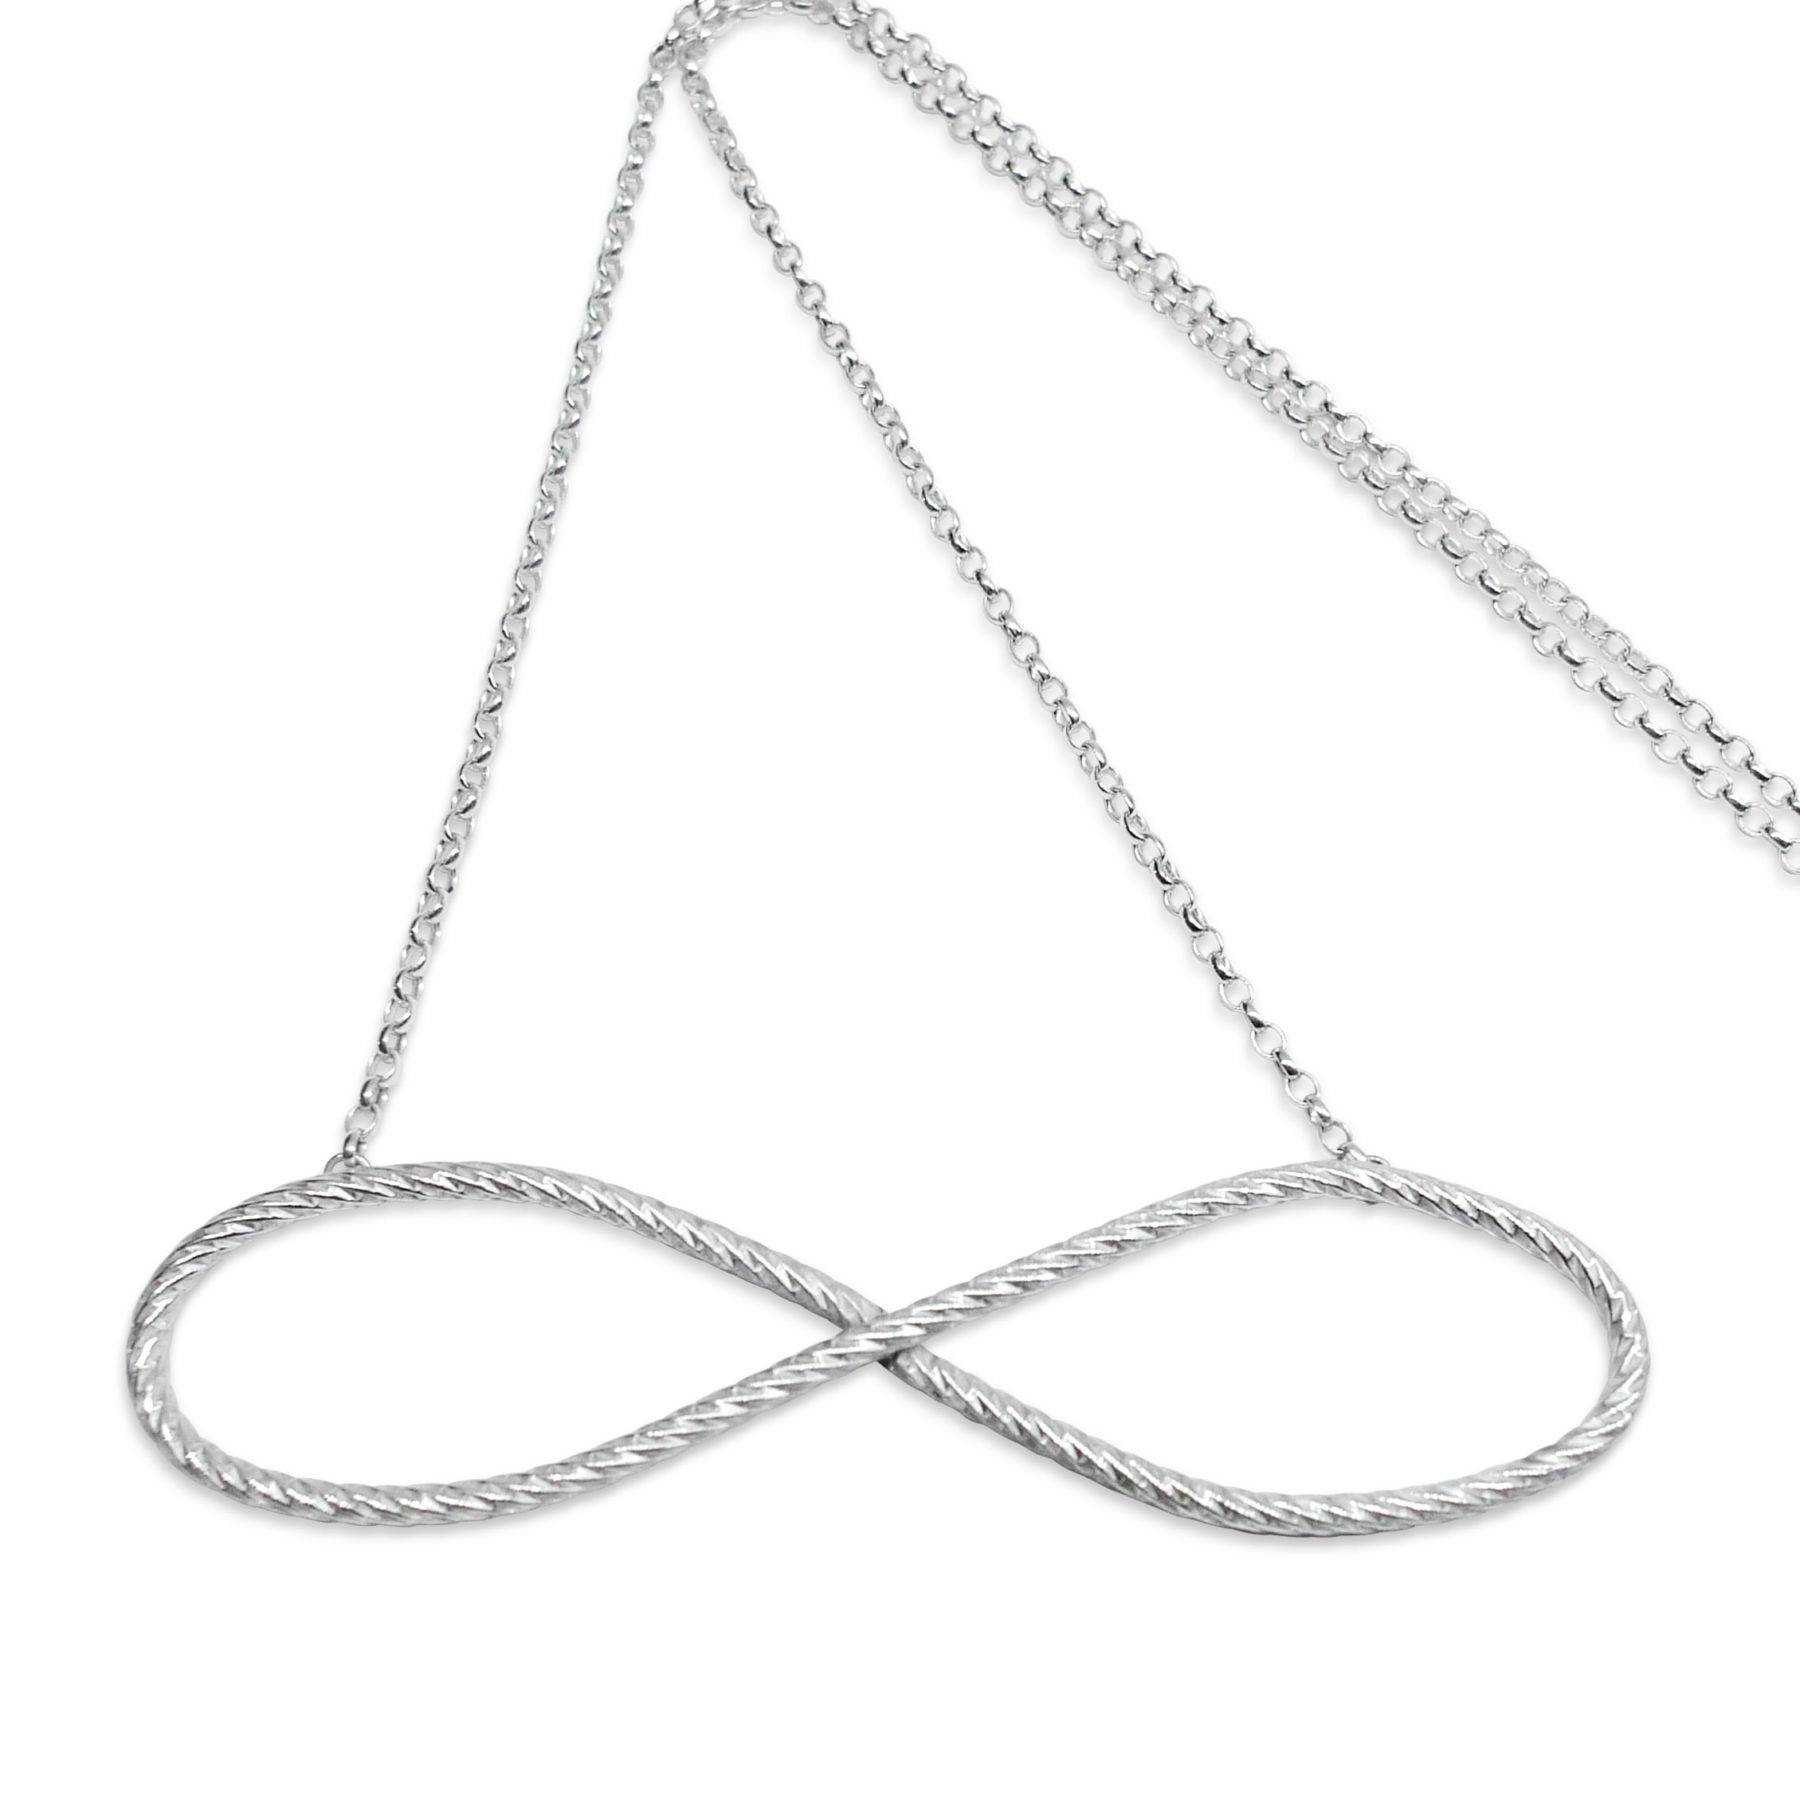 jewelry products necklaces diamond pendant enlarged yurman necklace infinity david